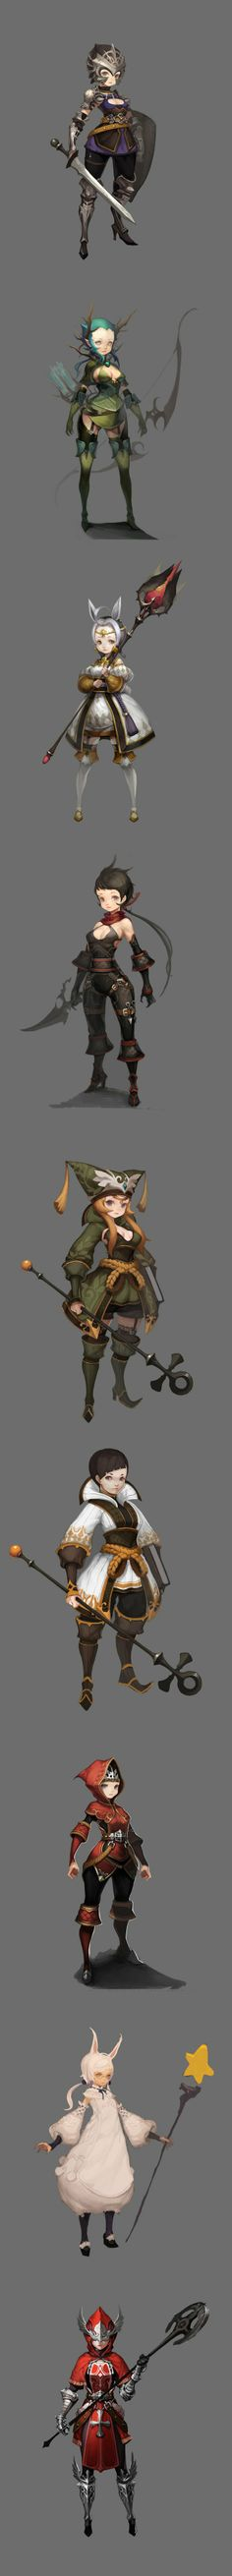 Can we pull some of the anime elements from this an incorporate it into more female characters?